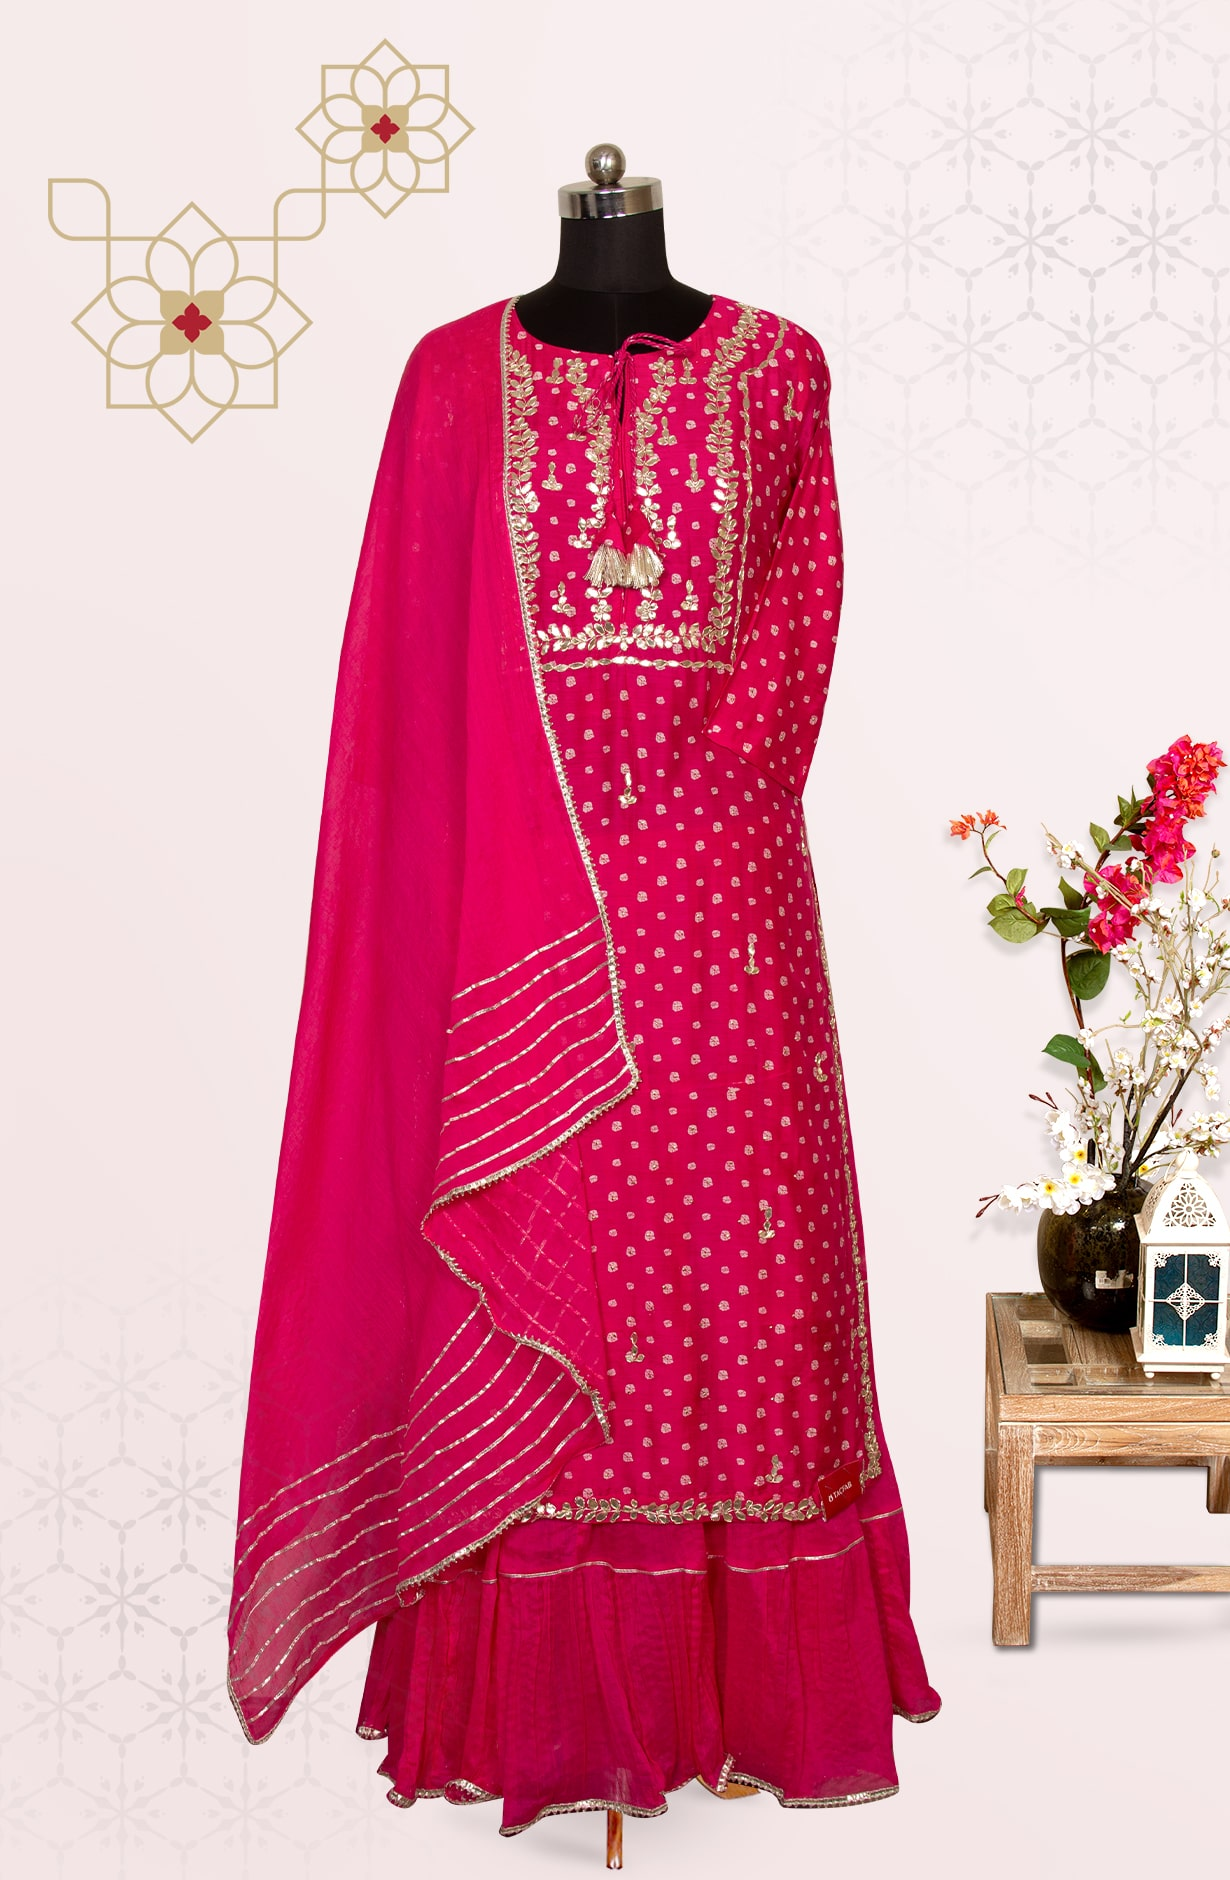 Pink Modal Cotton Designer Gota Patti Work Stitched Suit with Skirt and Dupatta - R155-61502